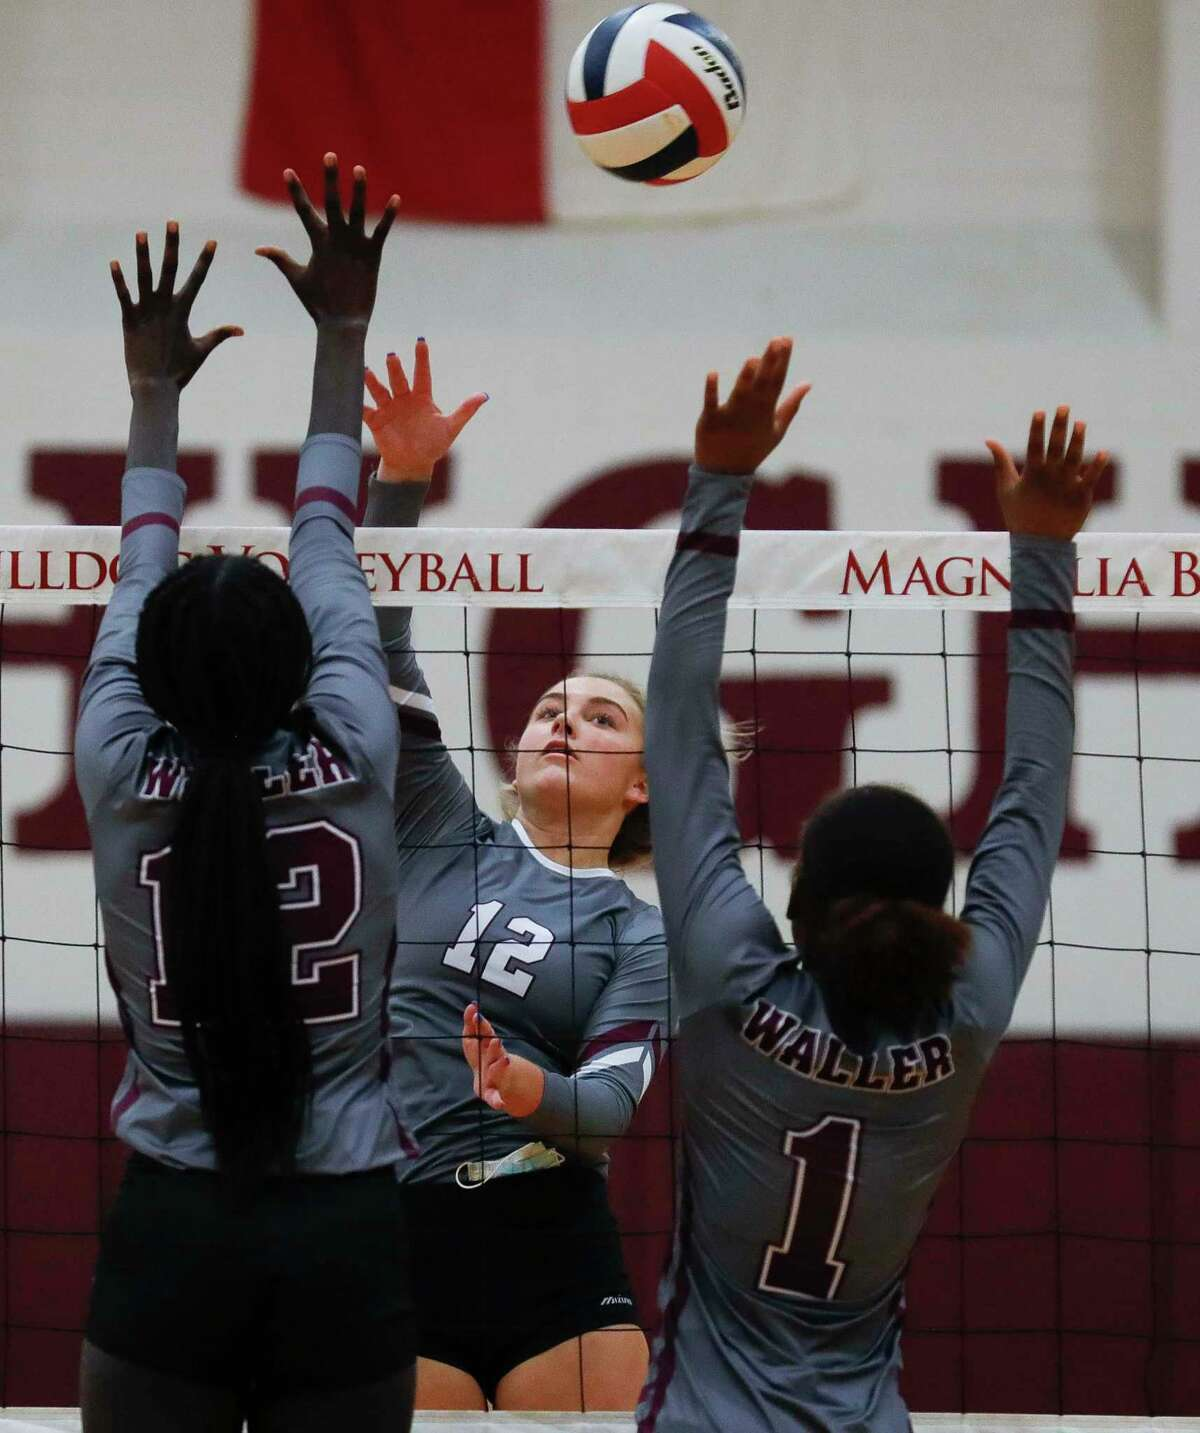 Magnolia outside hitter Sydney Gentry (12) gets a shot over Waller middle blocker Nyanath Ruot (12) and right side hitter Essence Williams (1) during the first set of a District 19-5A high school volleyball match at Magnolia High School, Tuesday, Nov. 10, 2020, in Magnolia.